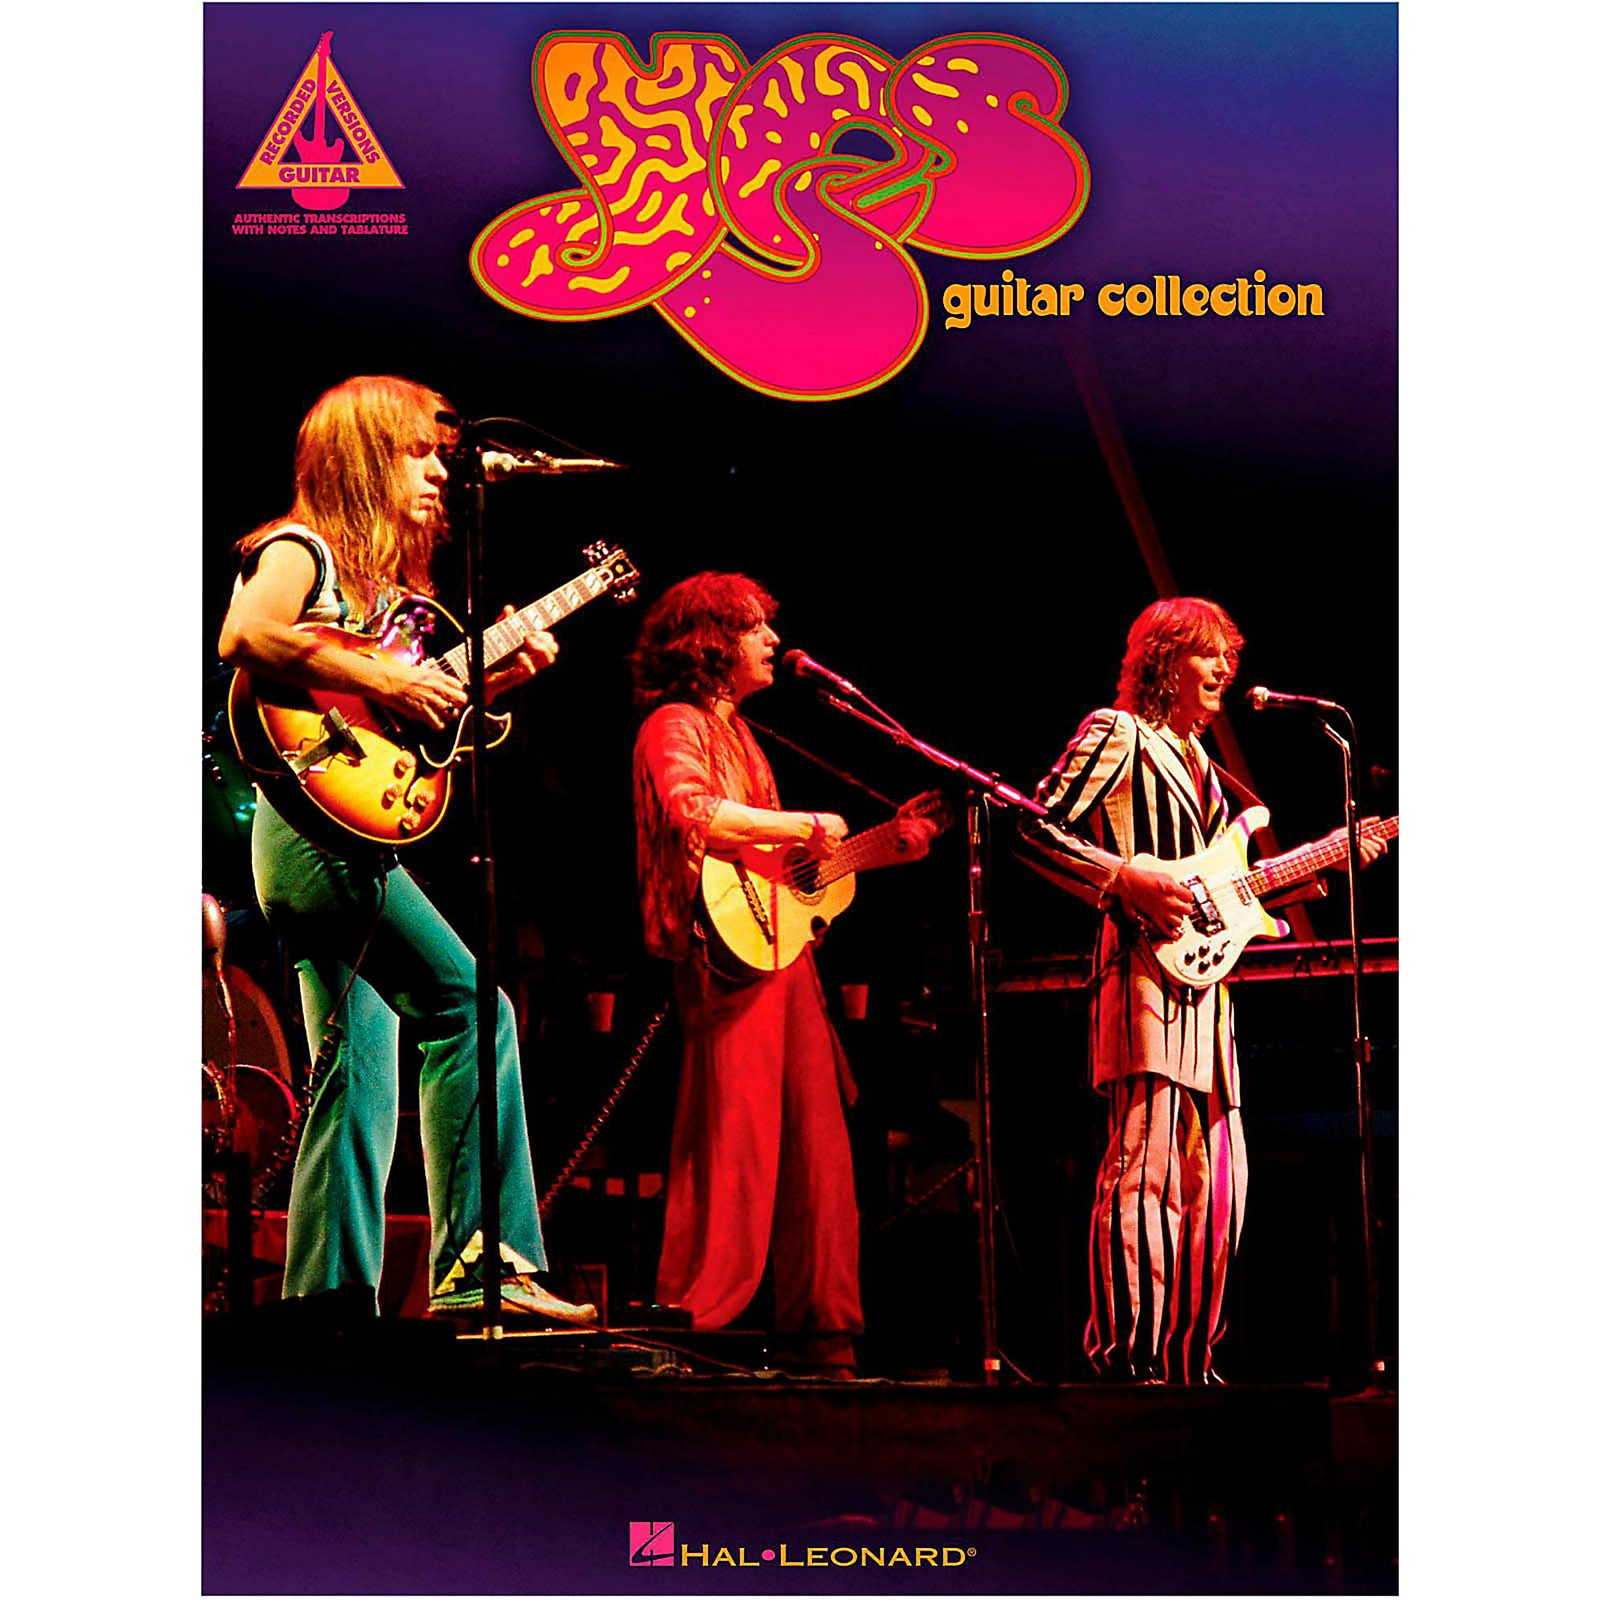 Hal Leonard Yes Guitar Collection Guitar Tab Songbook